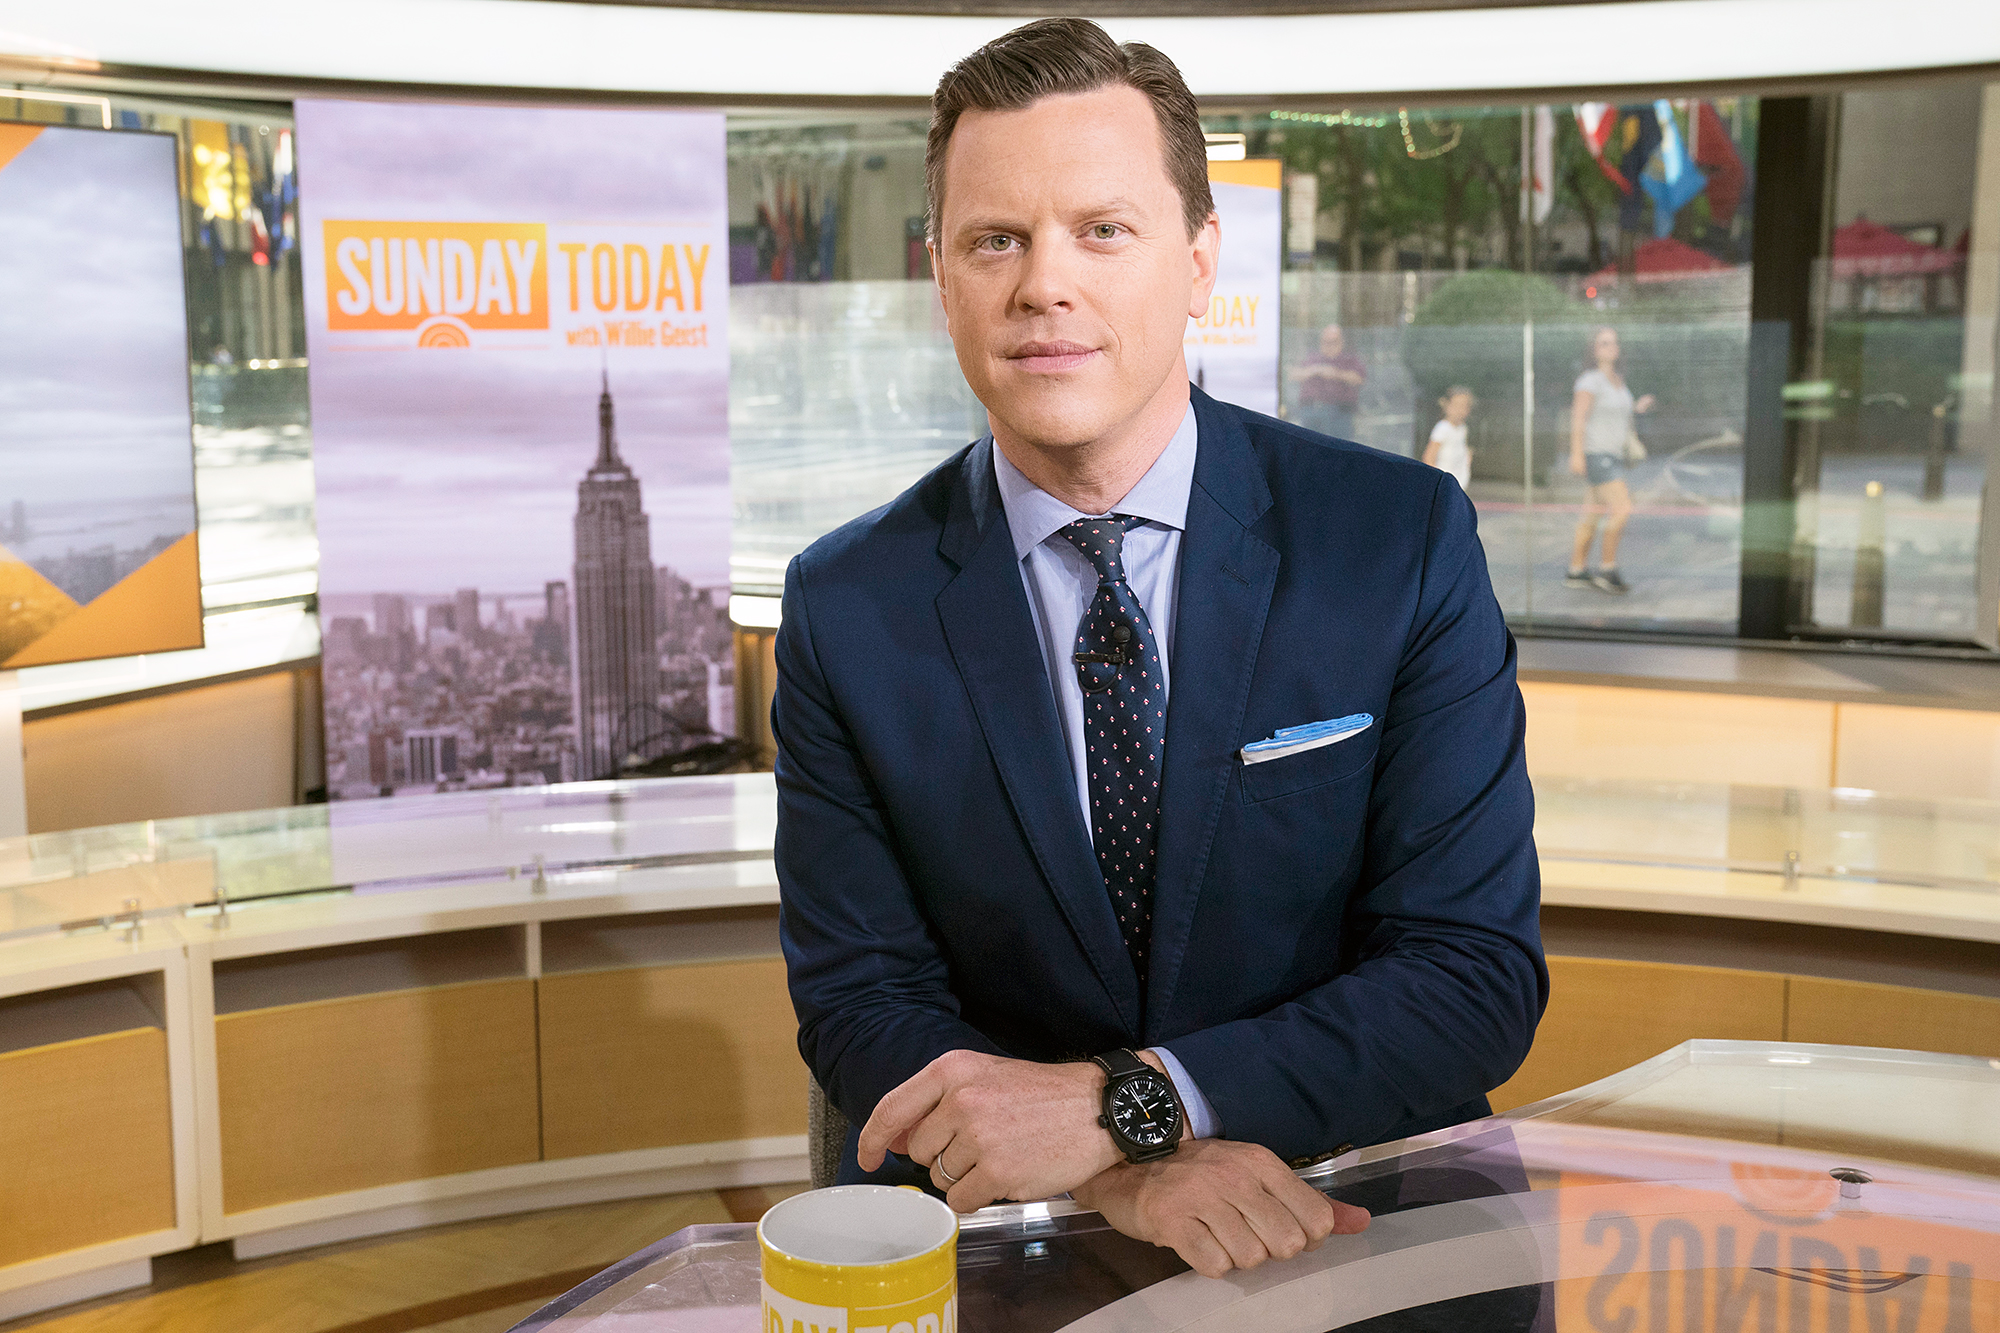 Willie Geist: 25 Things You Don't Know About Me!